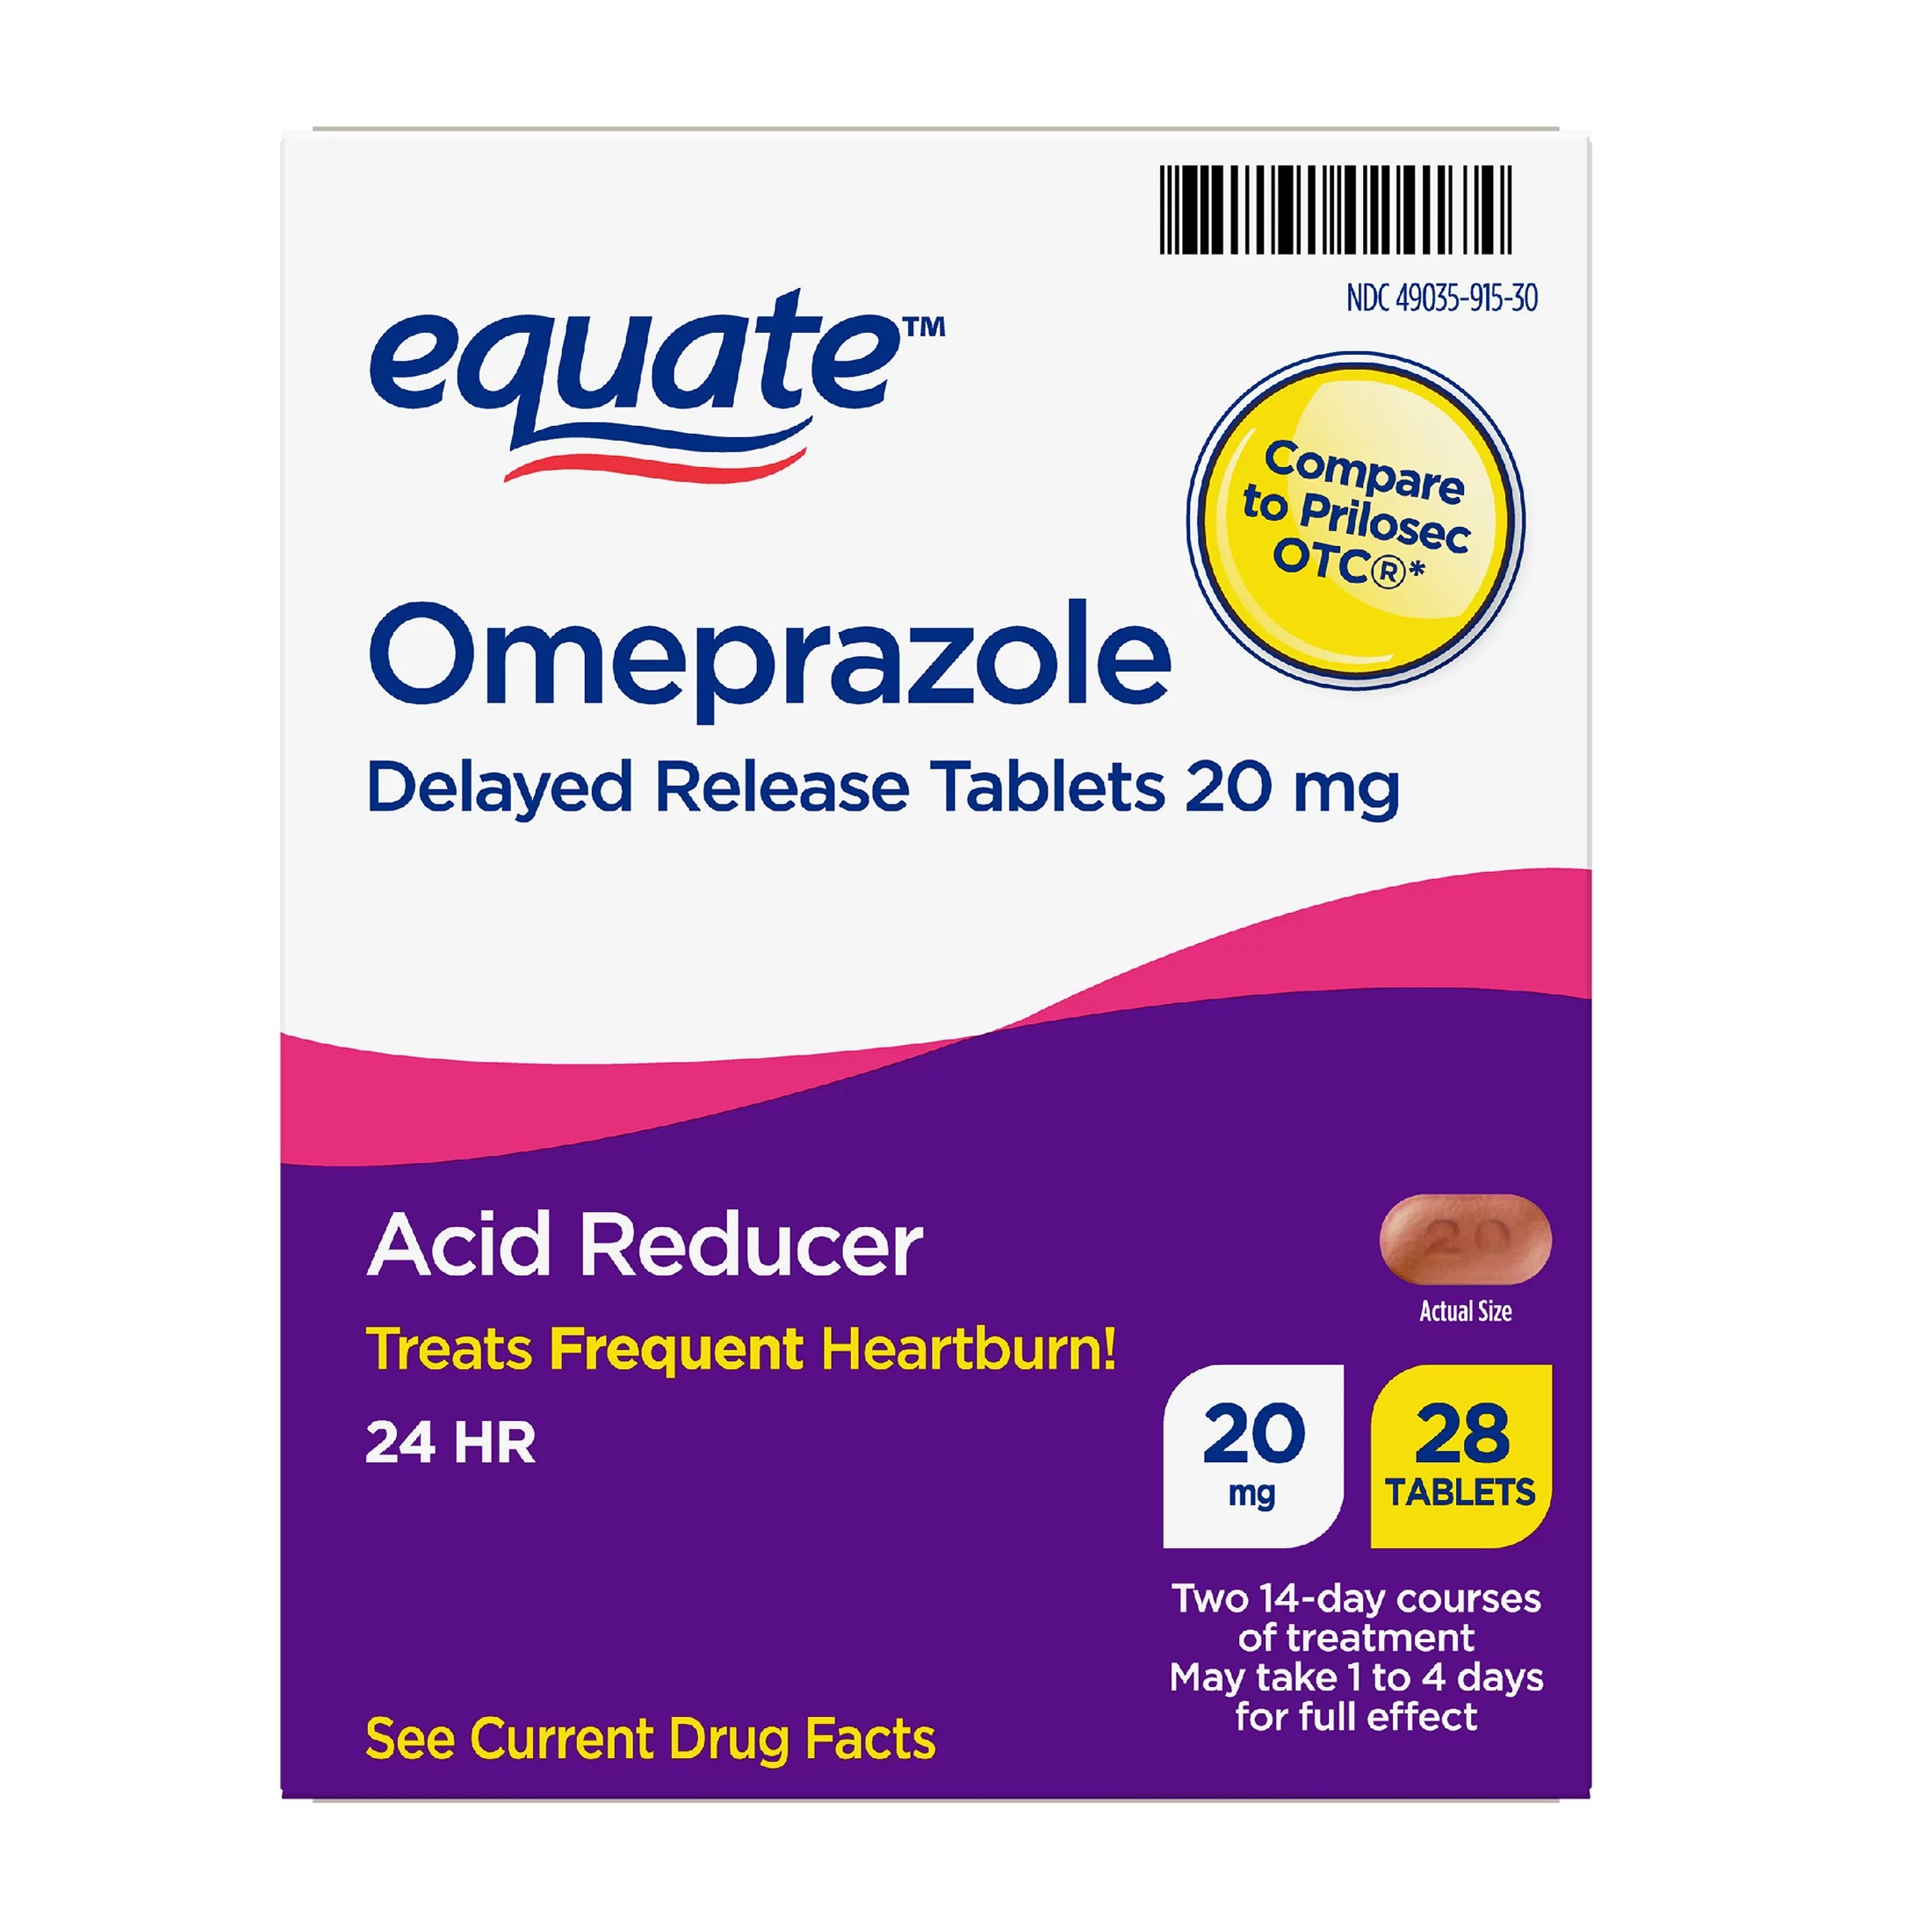 Equate Omeprazole Delayed Release Tablets 20 mg 28 Count ...